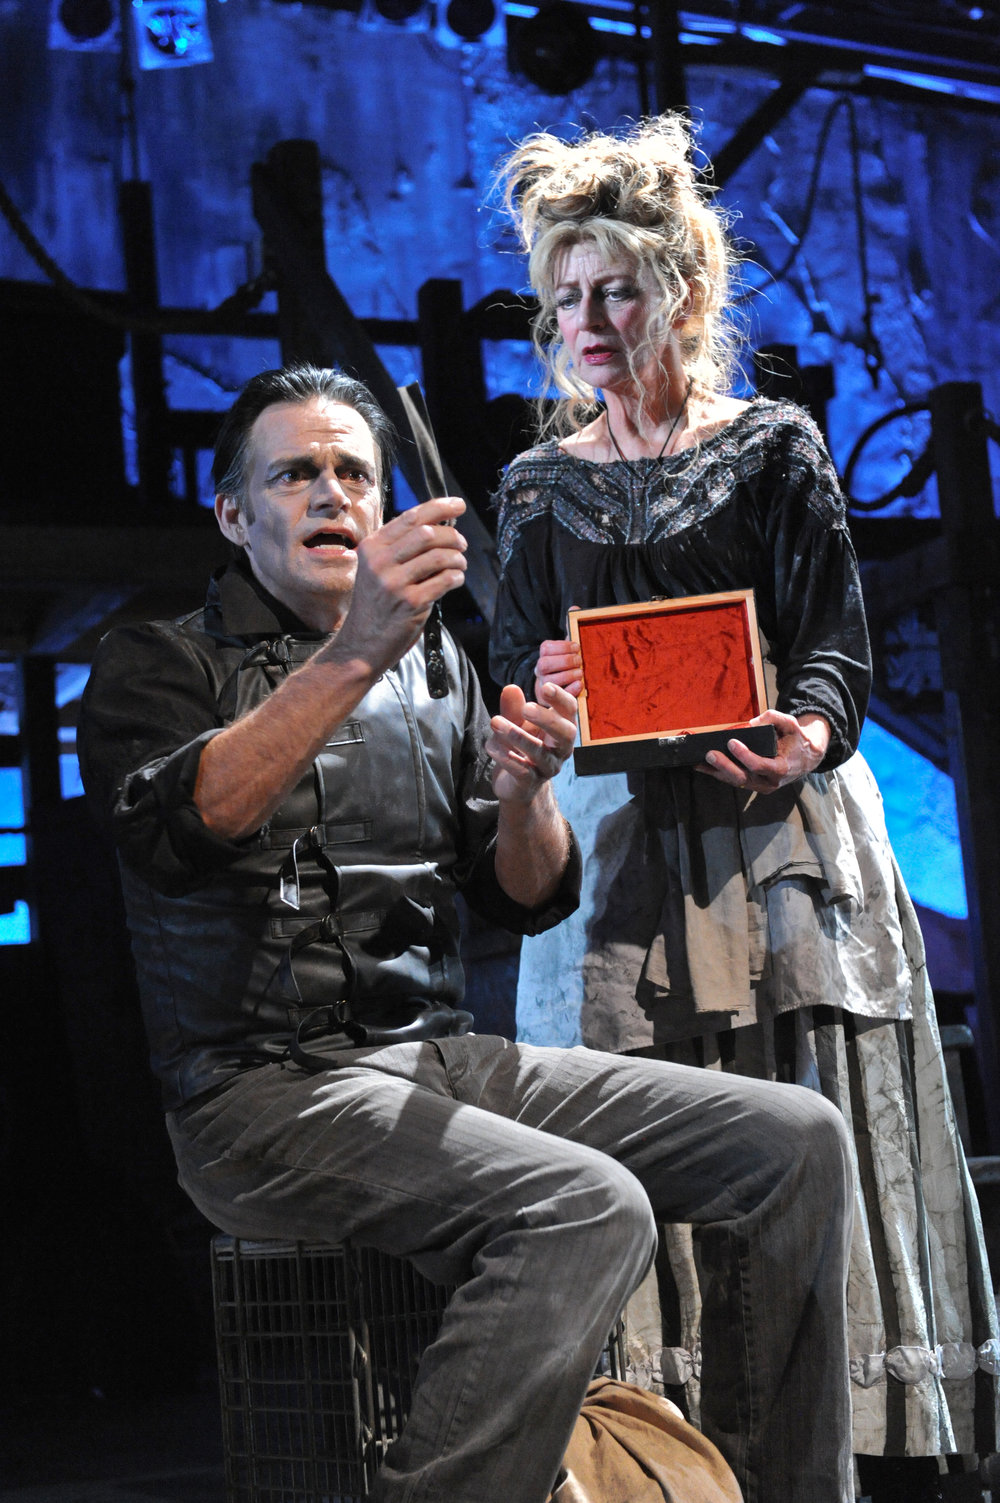 Mark Benninghofen as Sweeney Todd and Sally Wingert as Mrs. Lovett, Photo by George Byron Griffiths